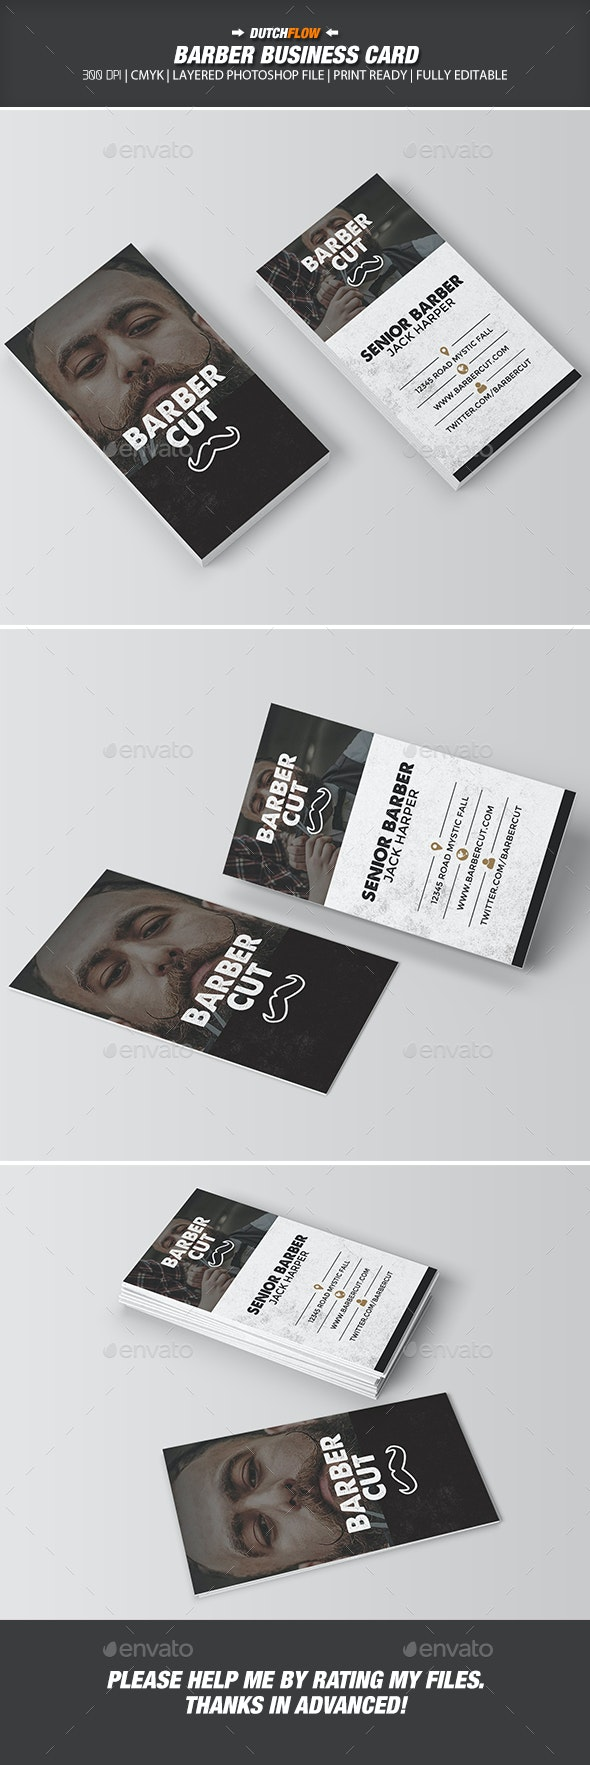 Barber Business Card - Industry Specific Business Cards